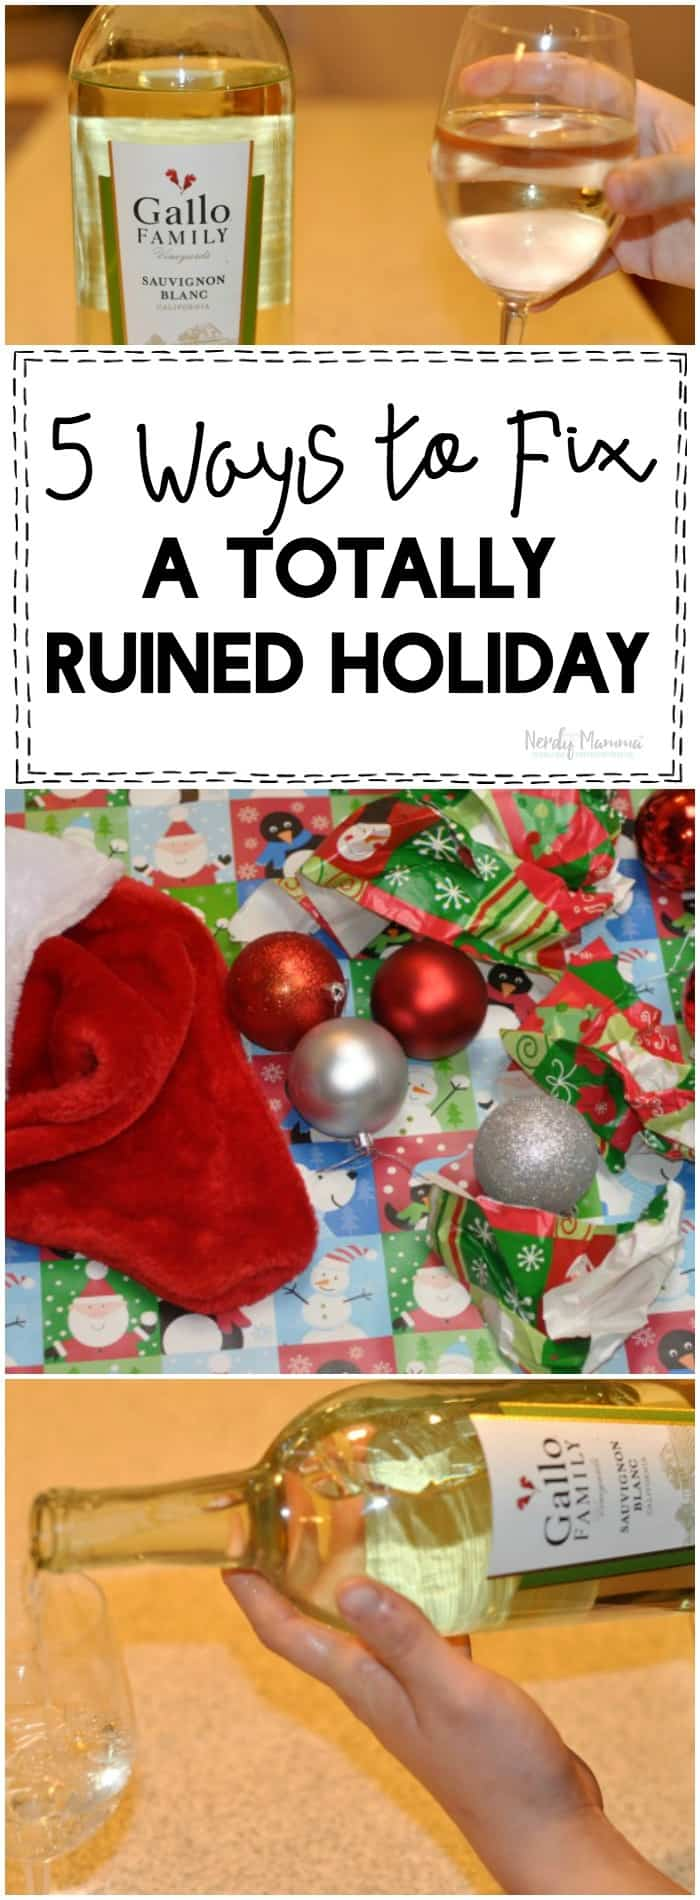 Wanna know how to fix a ruined holiday? Uhhhhh wine. Duh!